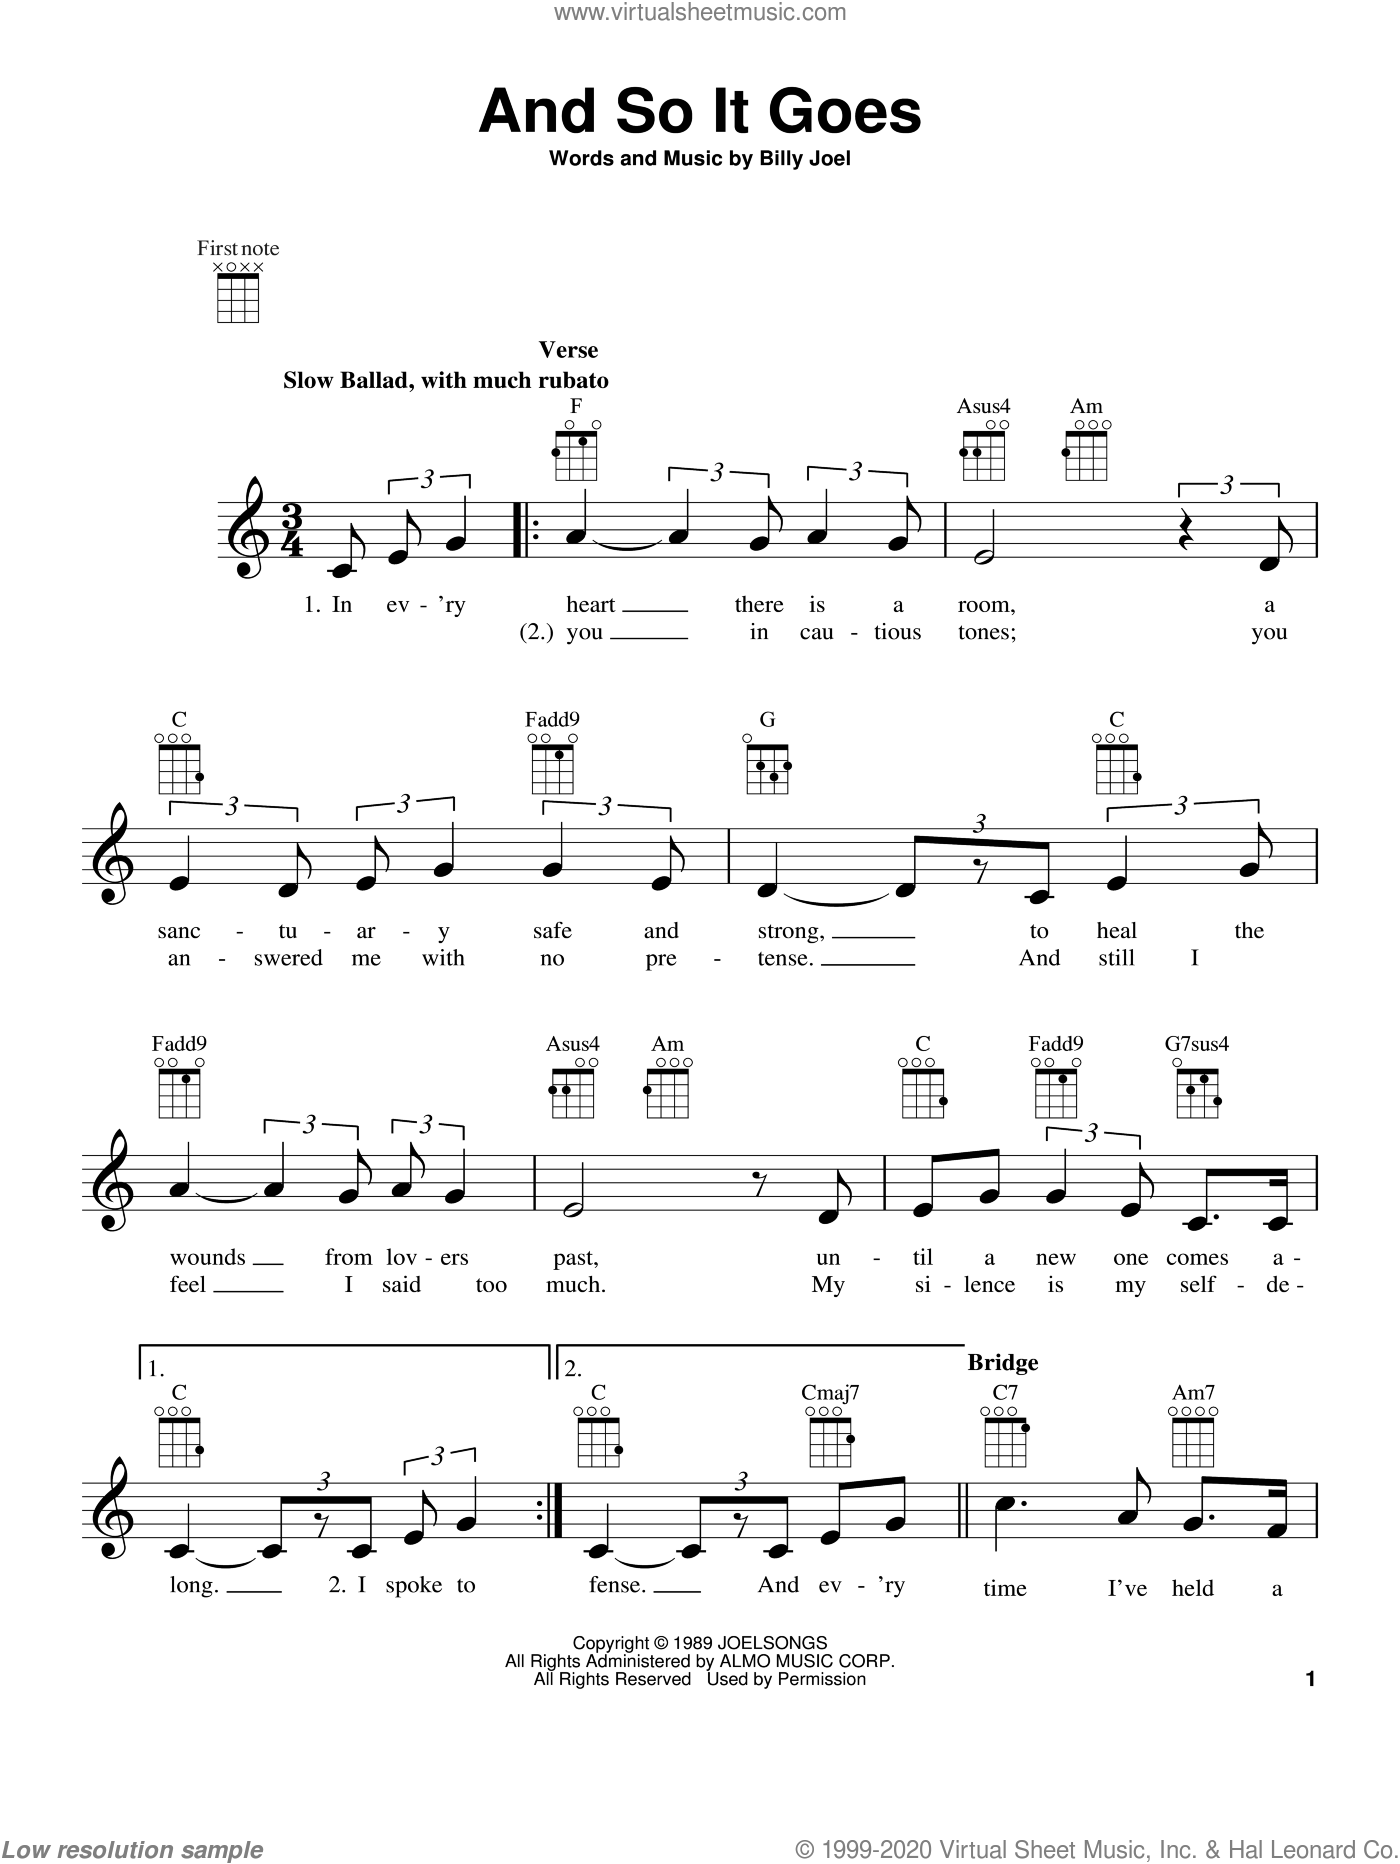 And So It Goes sheet music for ukulele by Billy Joel, intermediate skill level